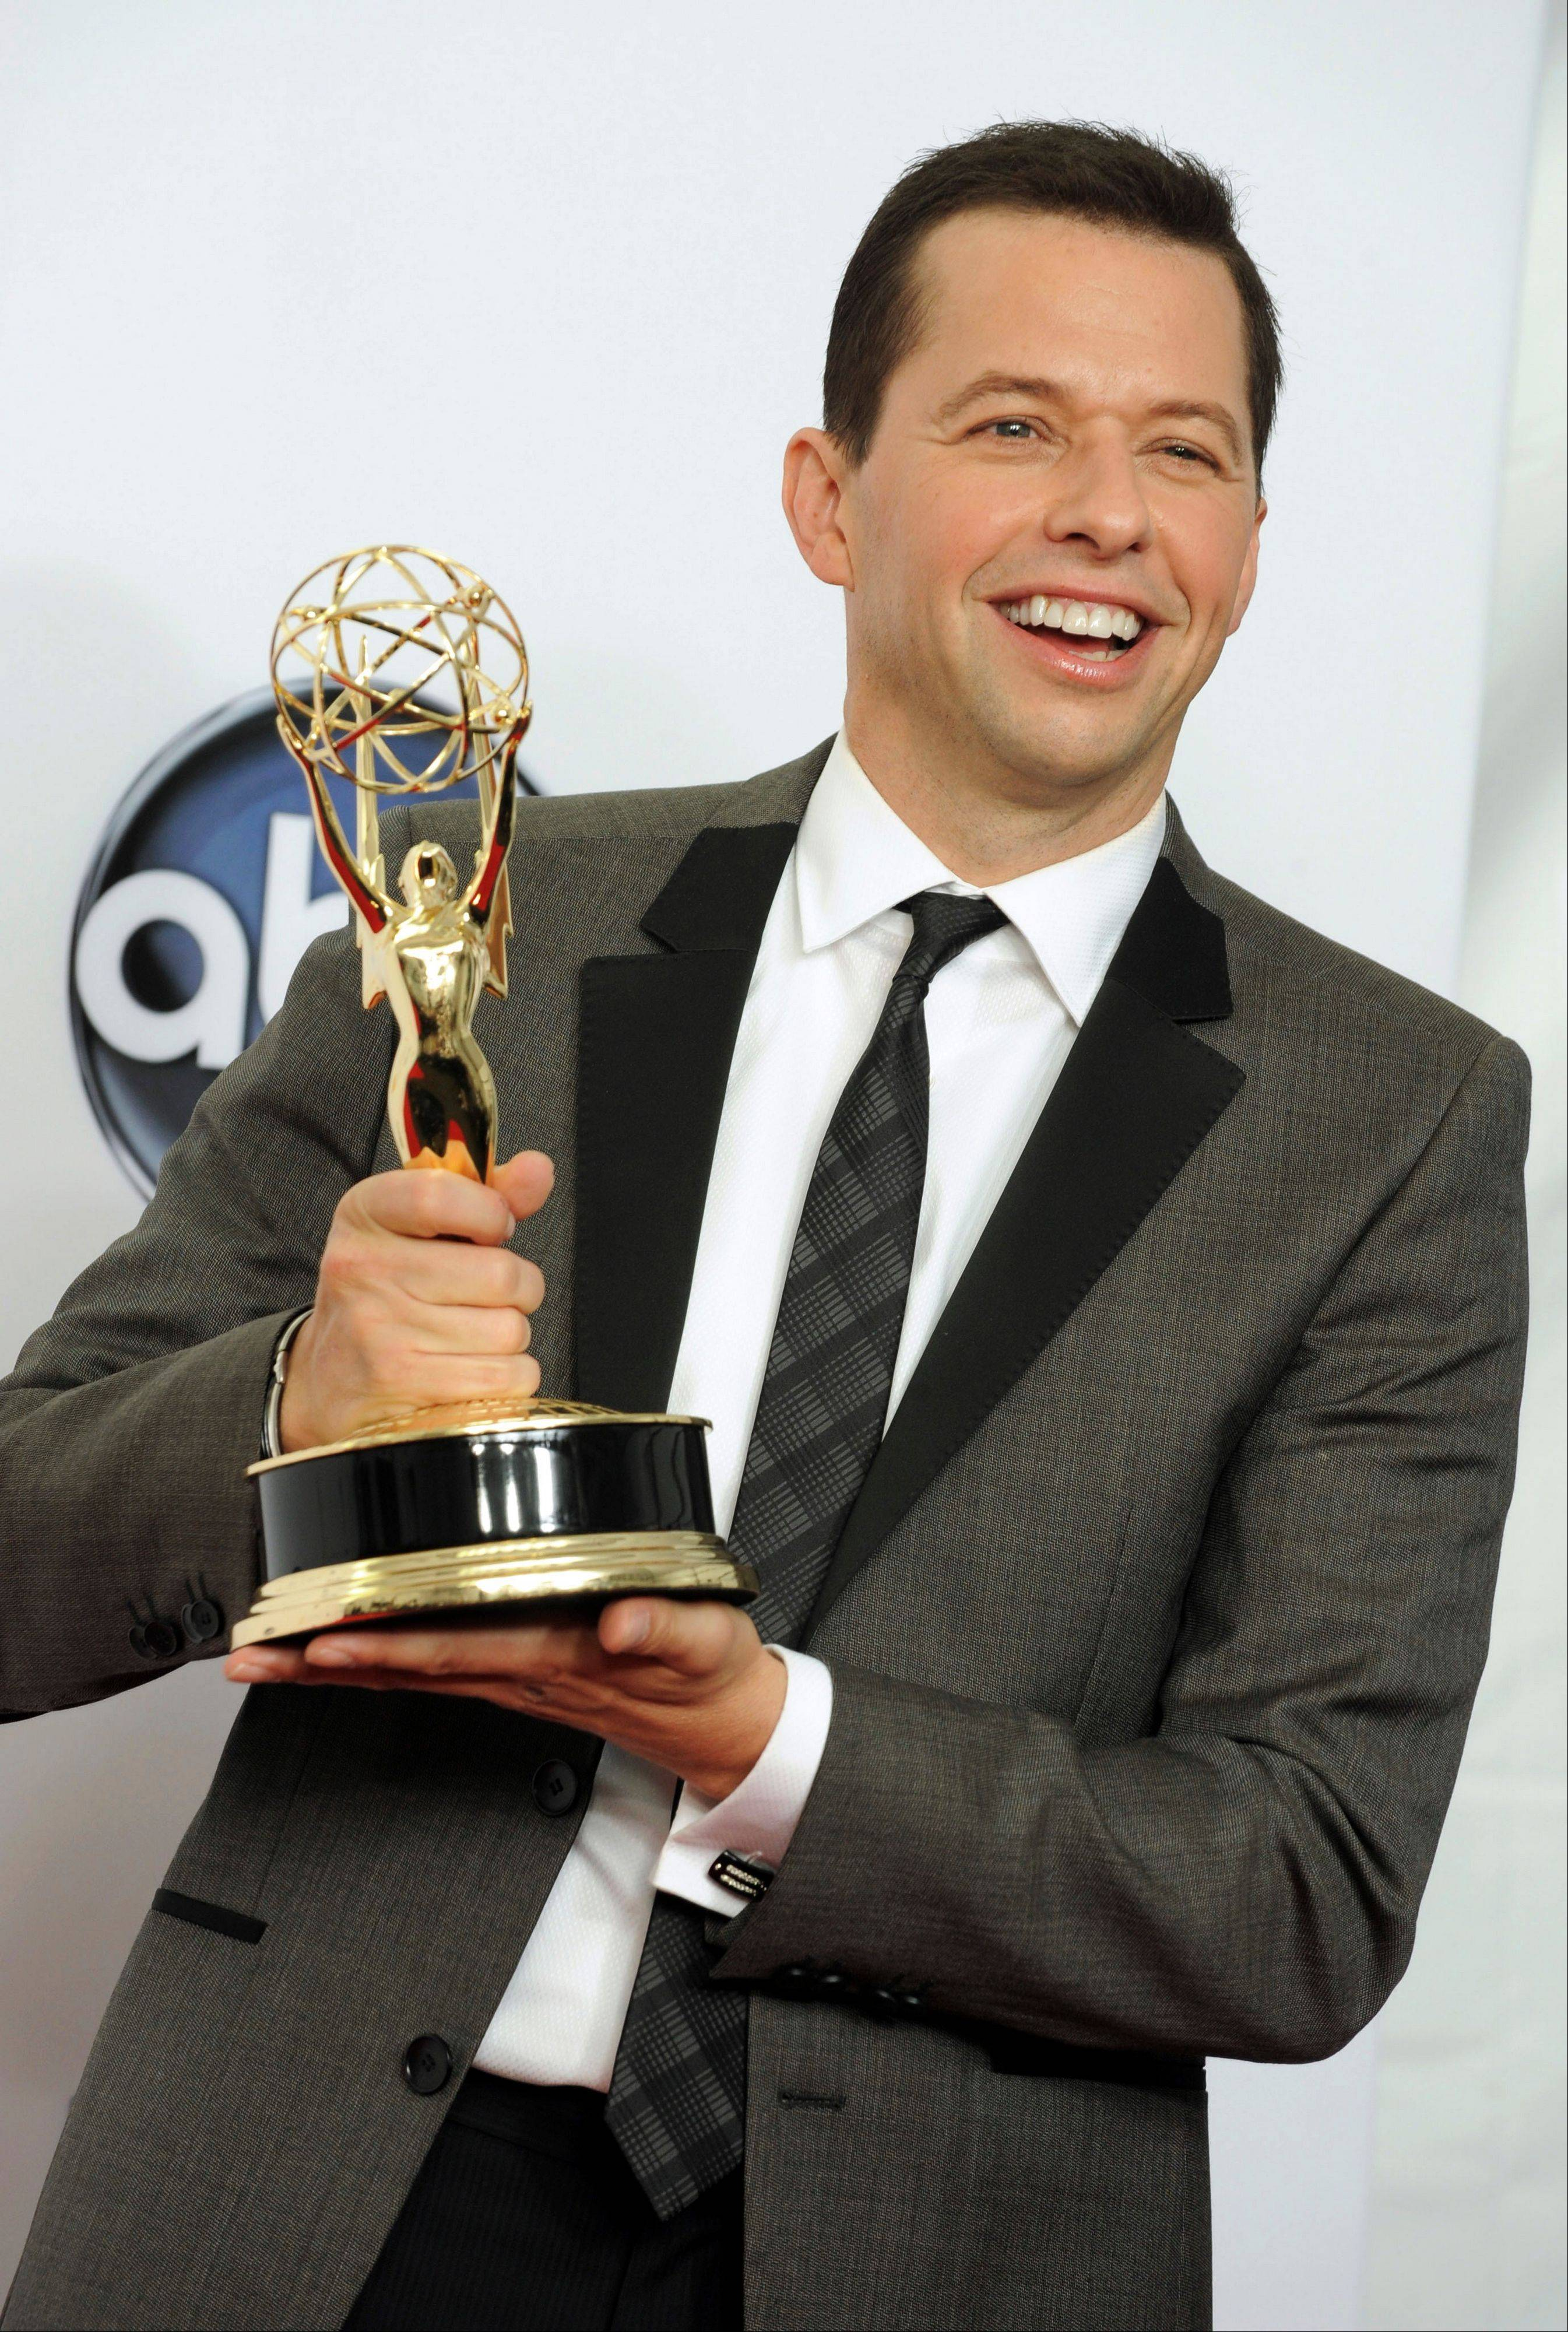 Actor Jon Cryer, winner of Outstanding Lead Actor in a Comedy Series, displays his Emmy backstage at the Nokia Theatre on Sunday in Los Angeles.